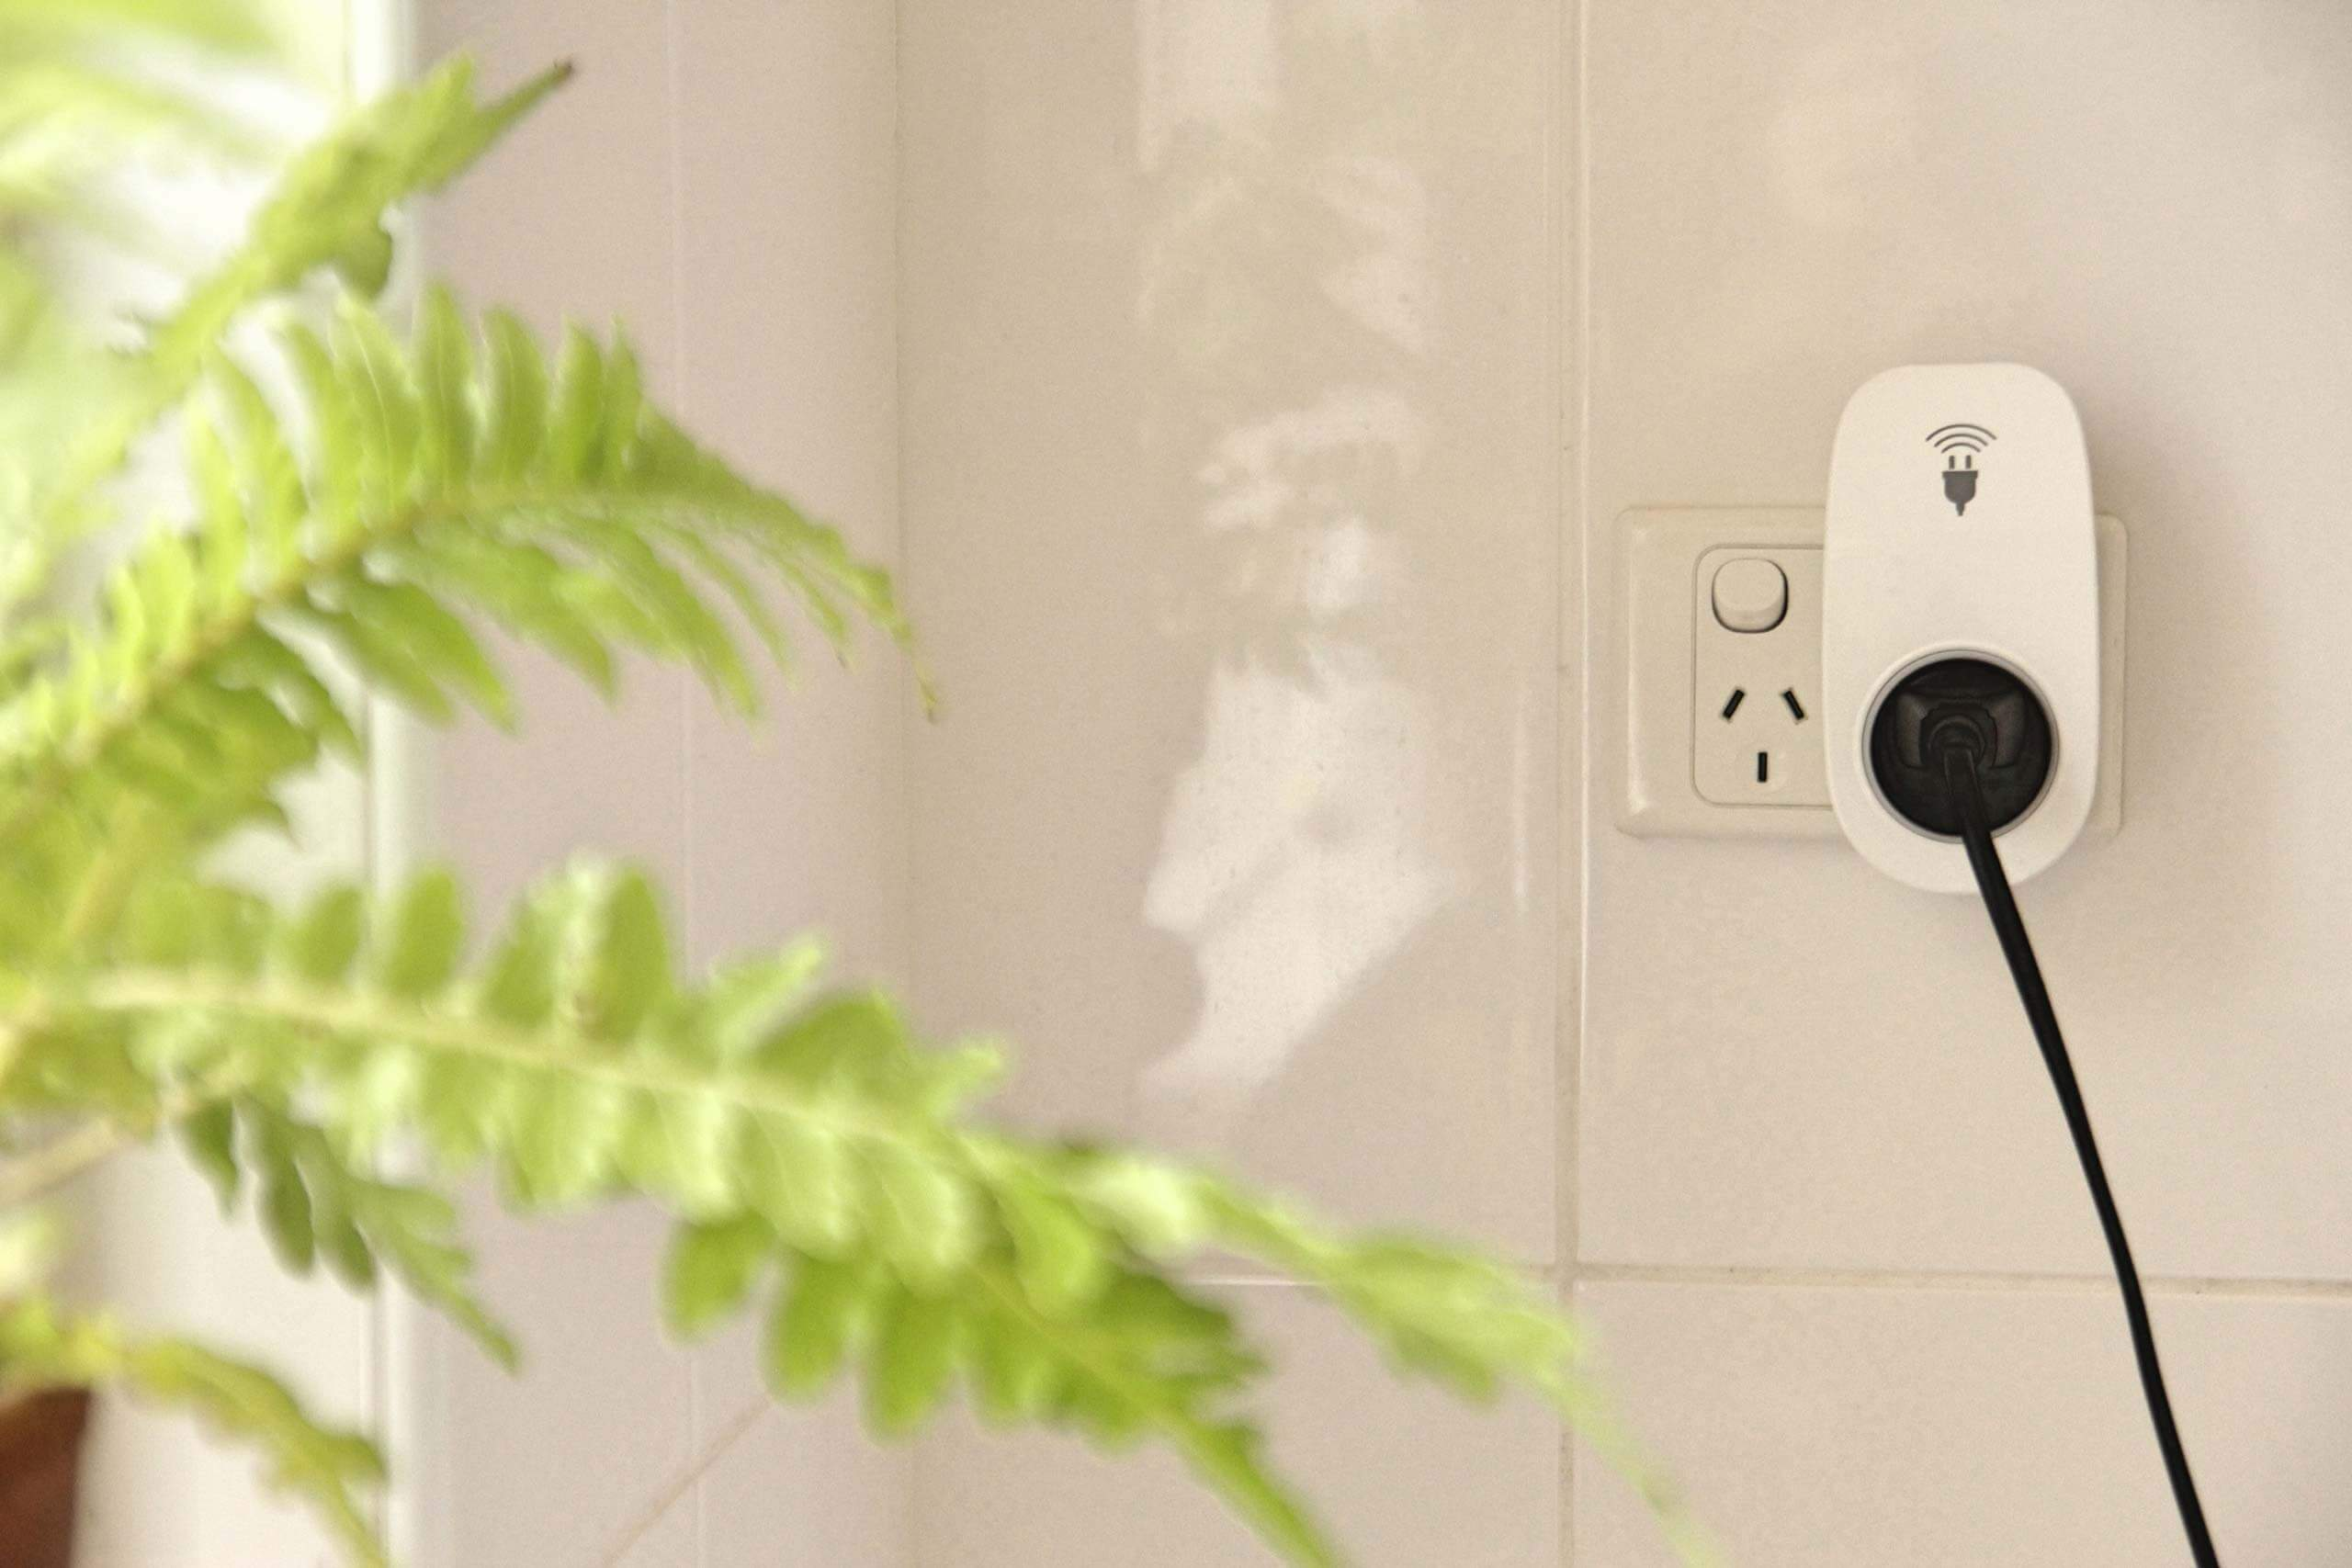 A smart plug sits in a white tiled room, with an appliance plugged into it and a plant in the foreground.